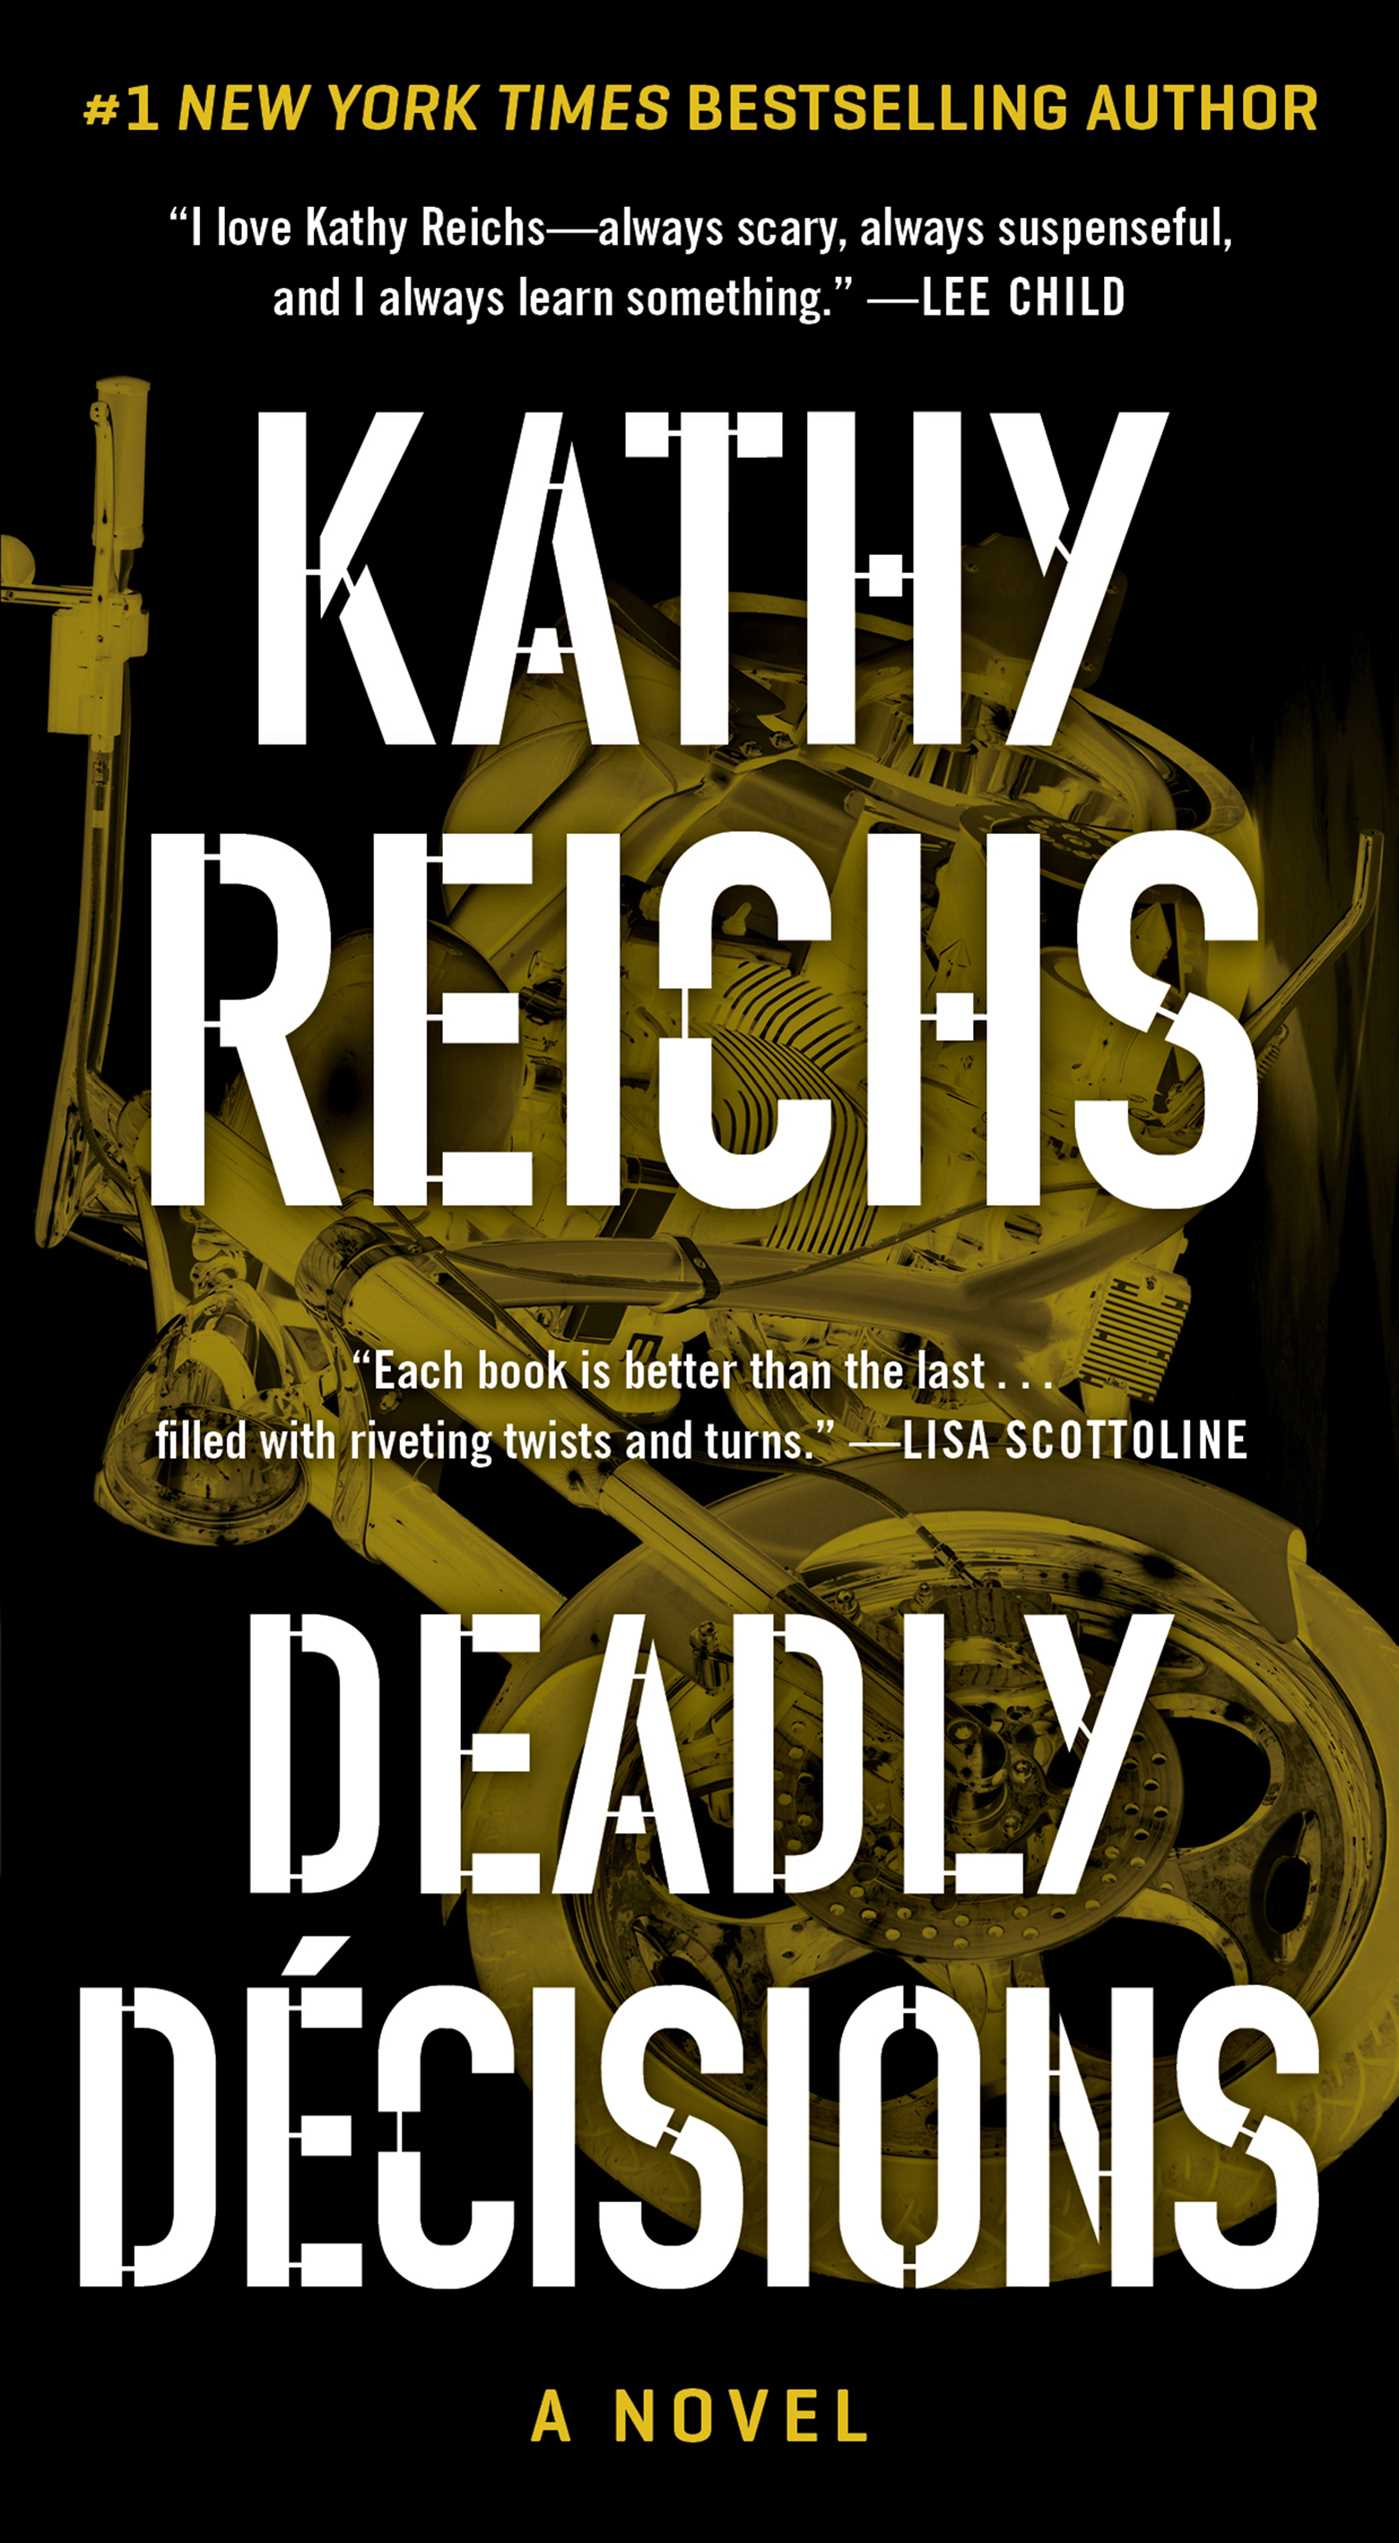 Kathy reichs official publisher page simon schuster canada book cover image jpg deadly decisions fandeluxe Image collections